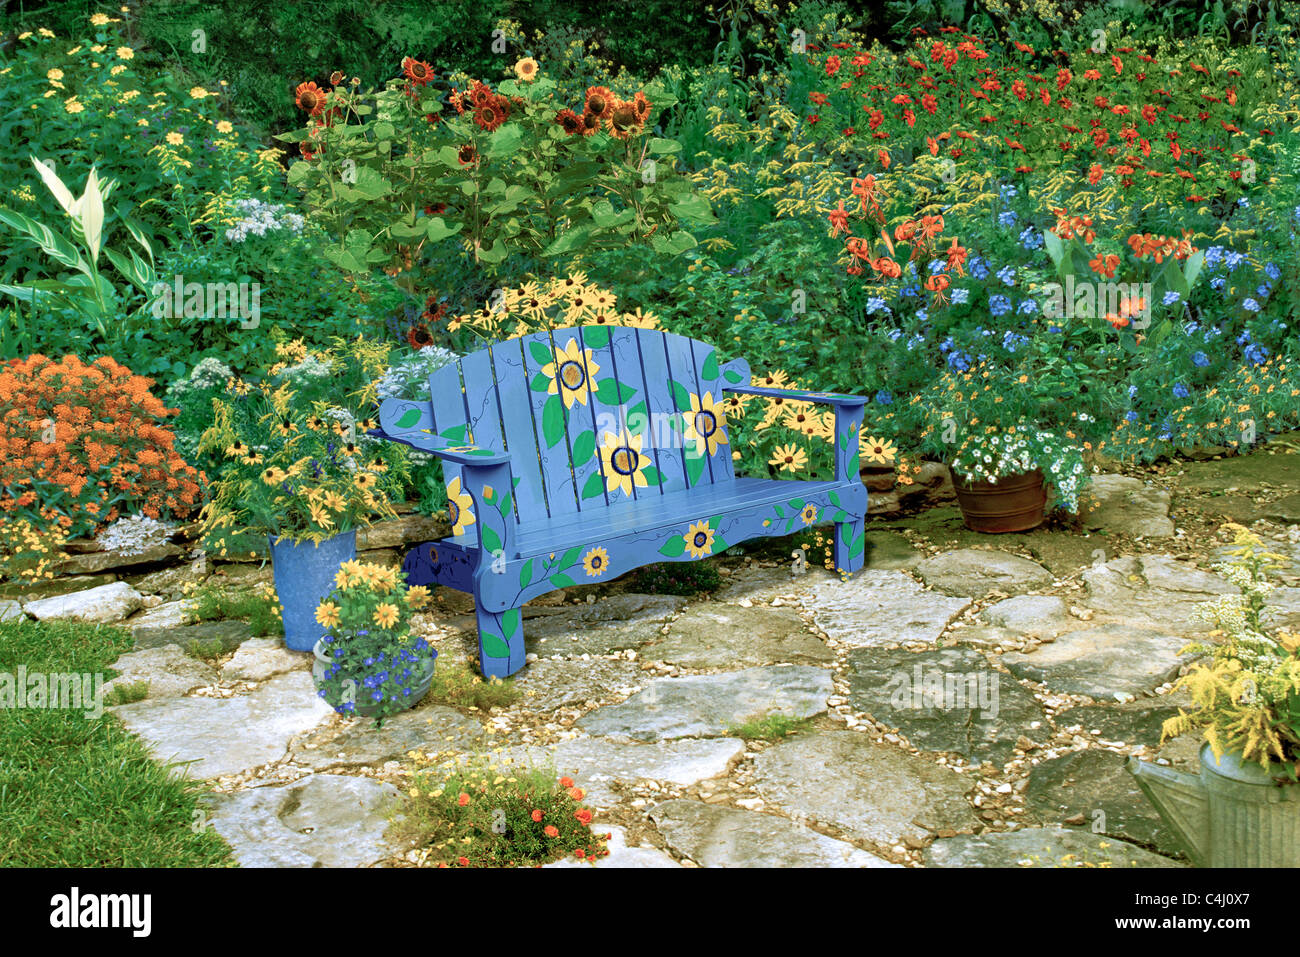 Colorful Painted Pavers Stock Photos U0026 Colorful Painted ...